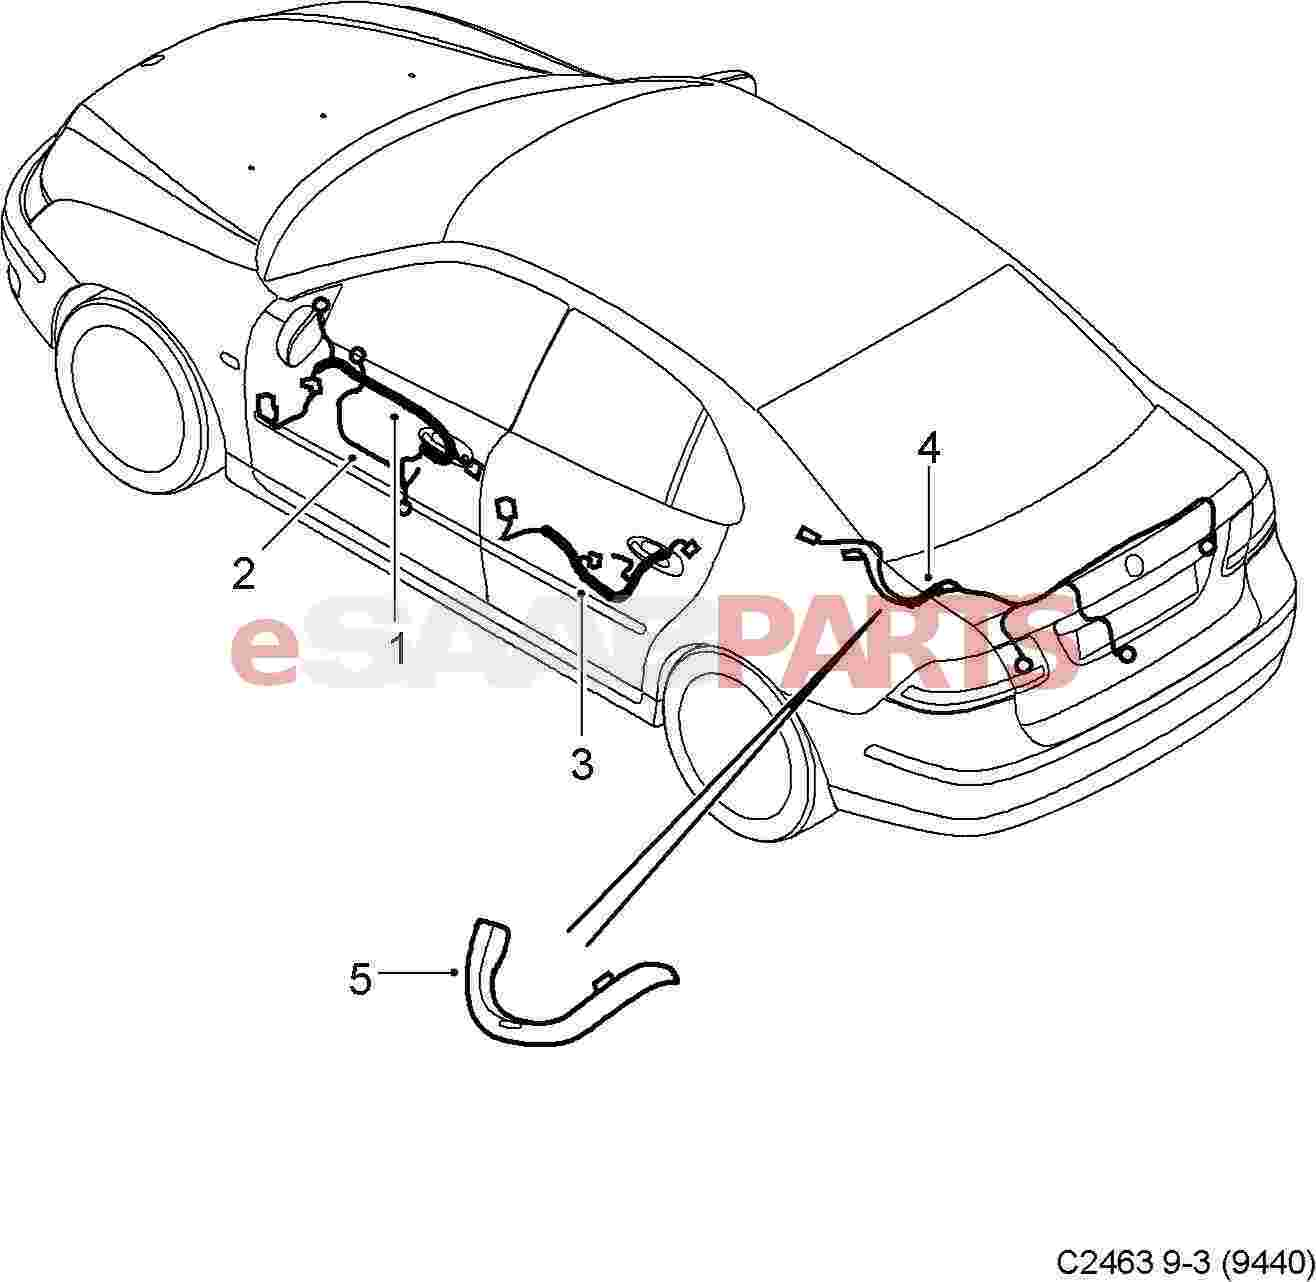 Saab 900 Alternator Wiring Diagram. Saab. Auto Wiring Diagram